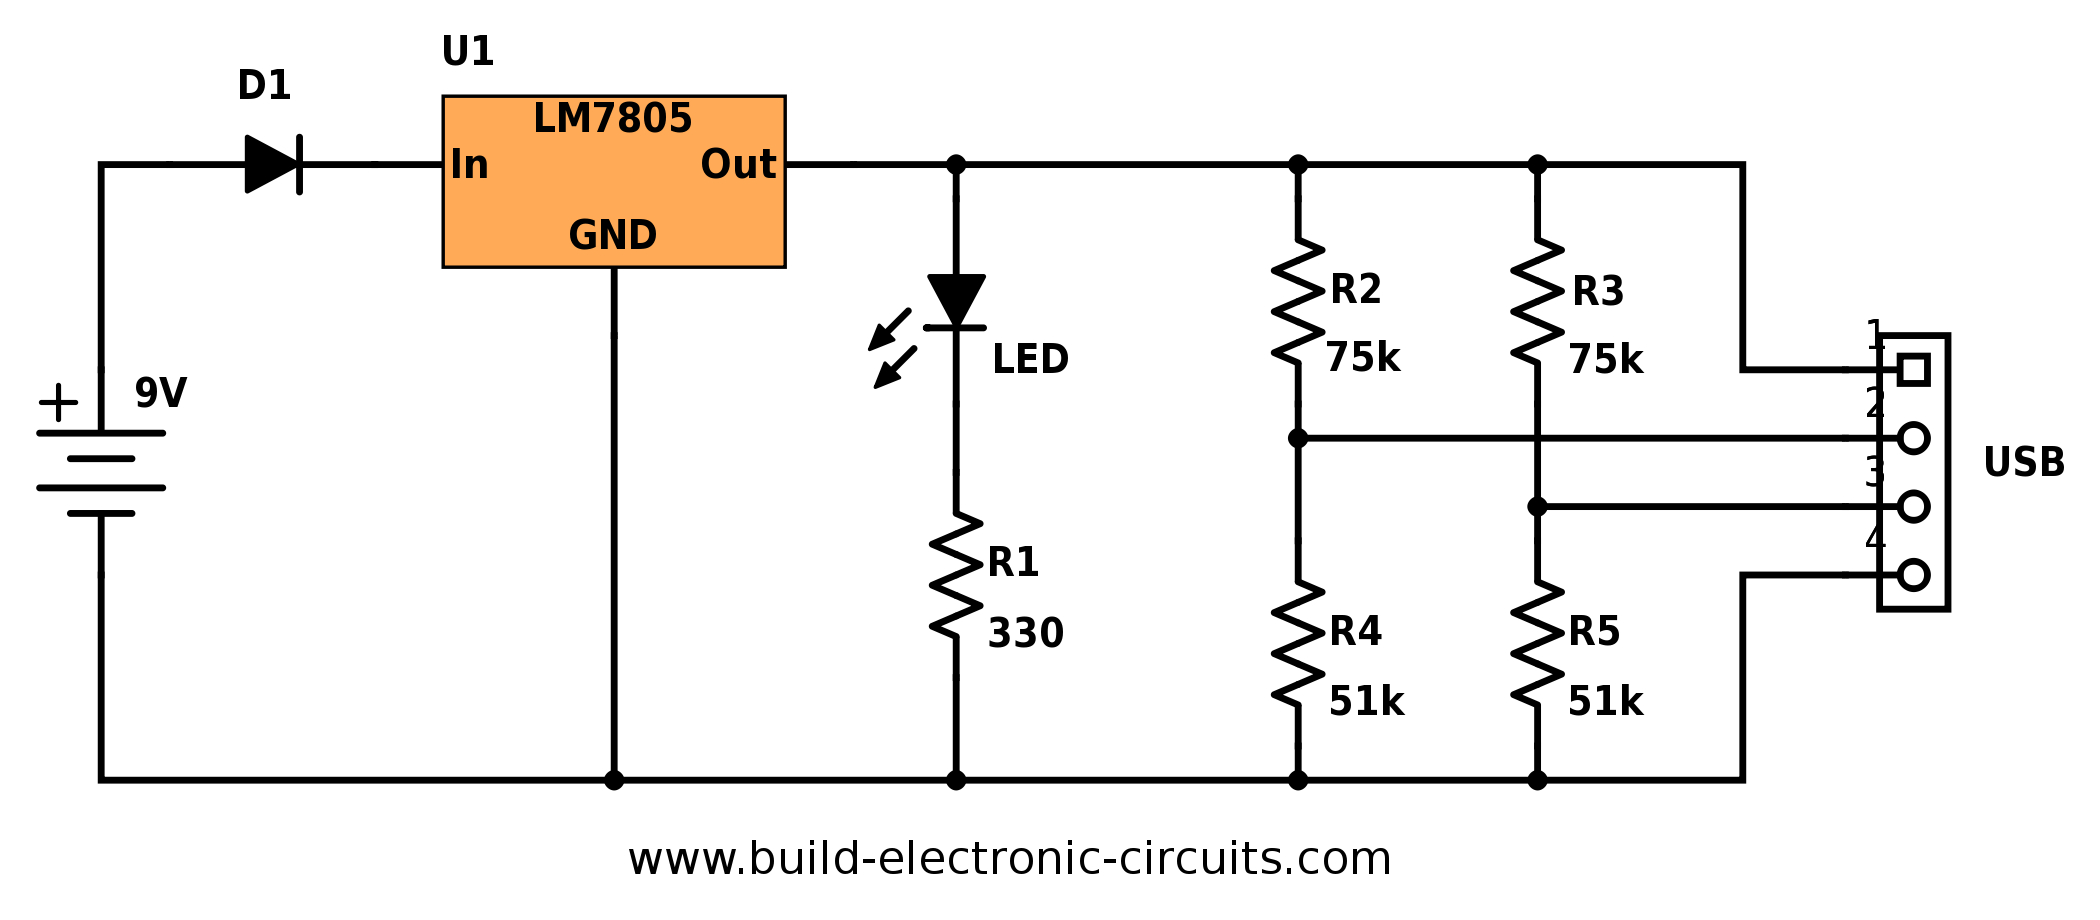 Portable Usb Charger Circuit - Build Electronic Circuits - Wiring Diagram Usb Powered Speakers